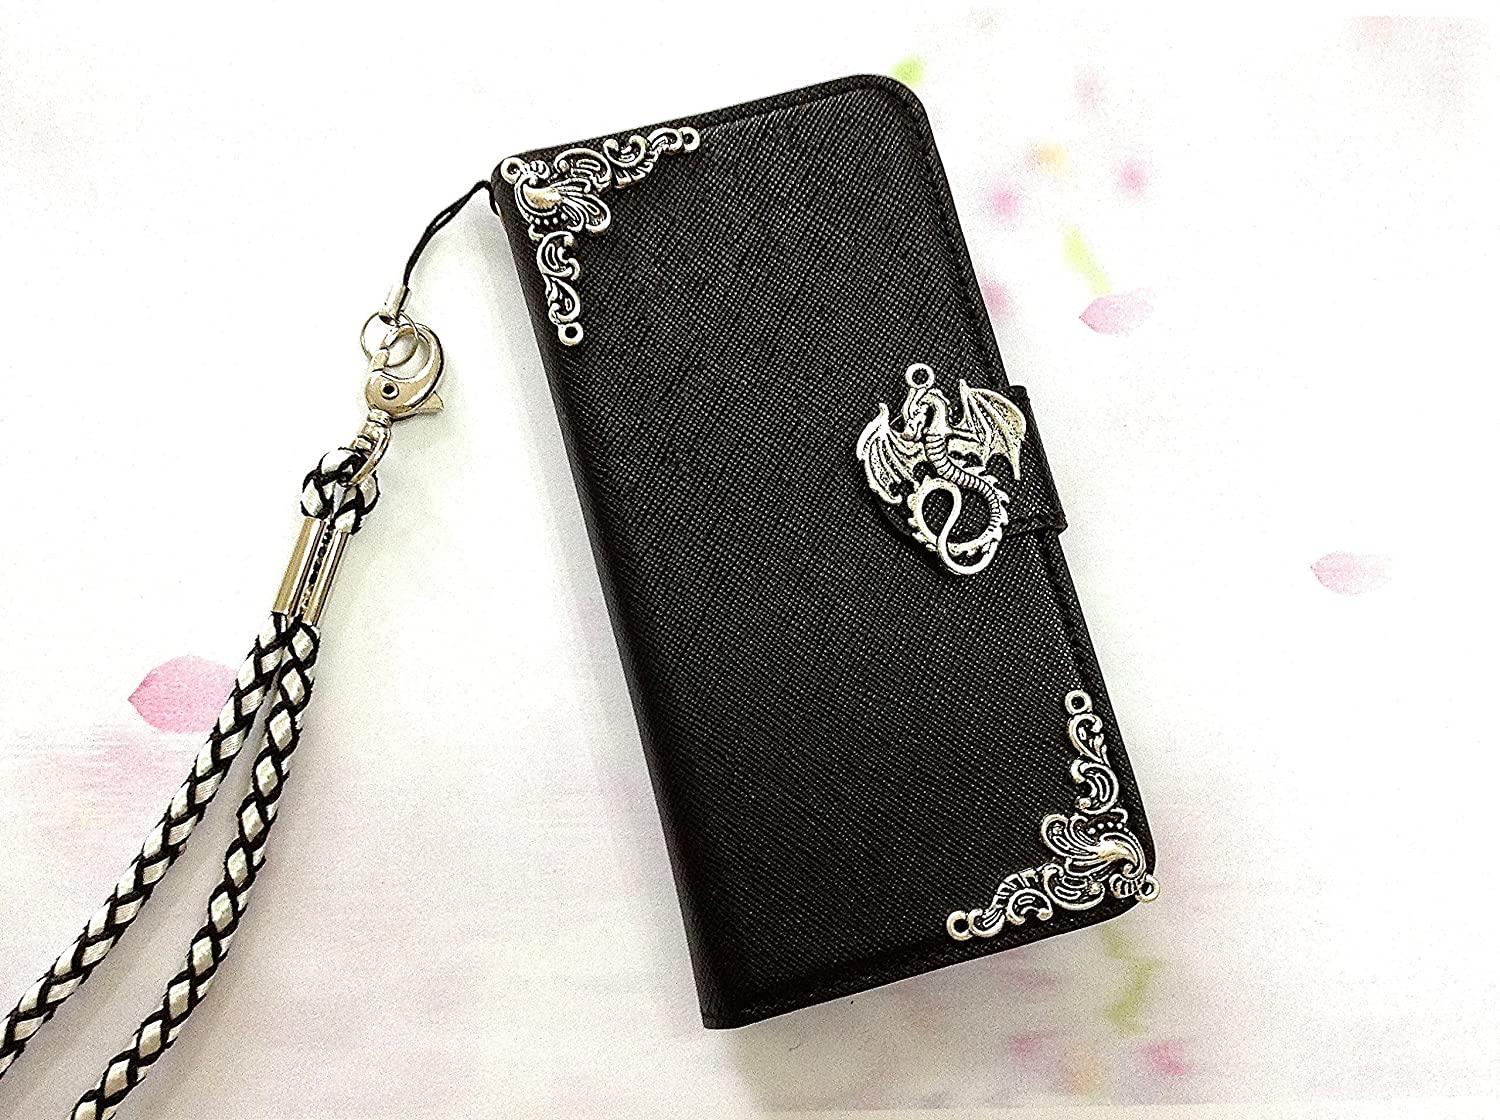 Dragon phone removable leather wallet case handmade phone wallet cover for iPhone X XS XR XS Max SE 5 5s 6 6s 7 8 Plus Samsung S8 S9 Plus S7 Edge Note 8 MN0471